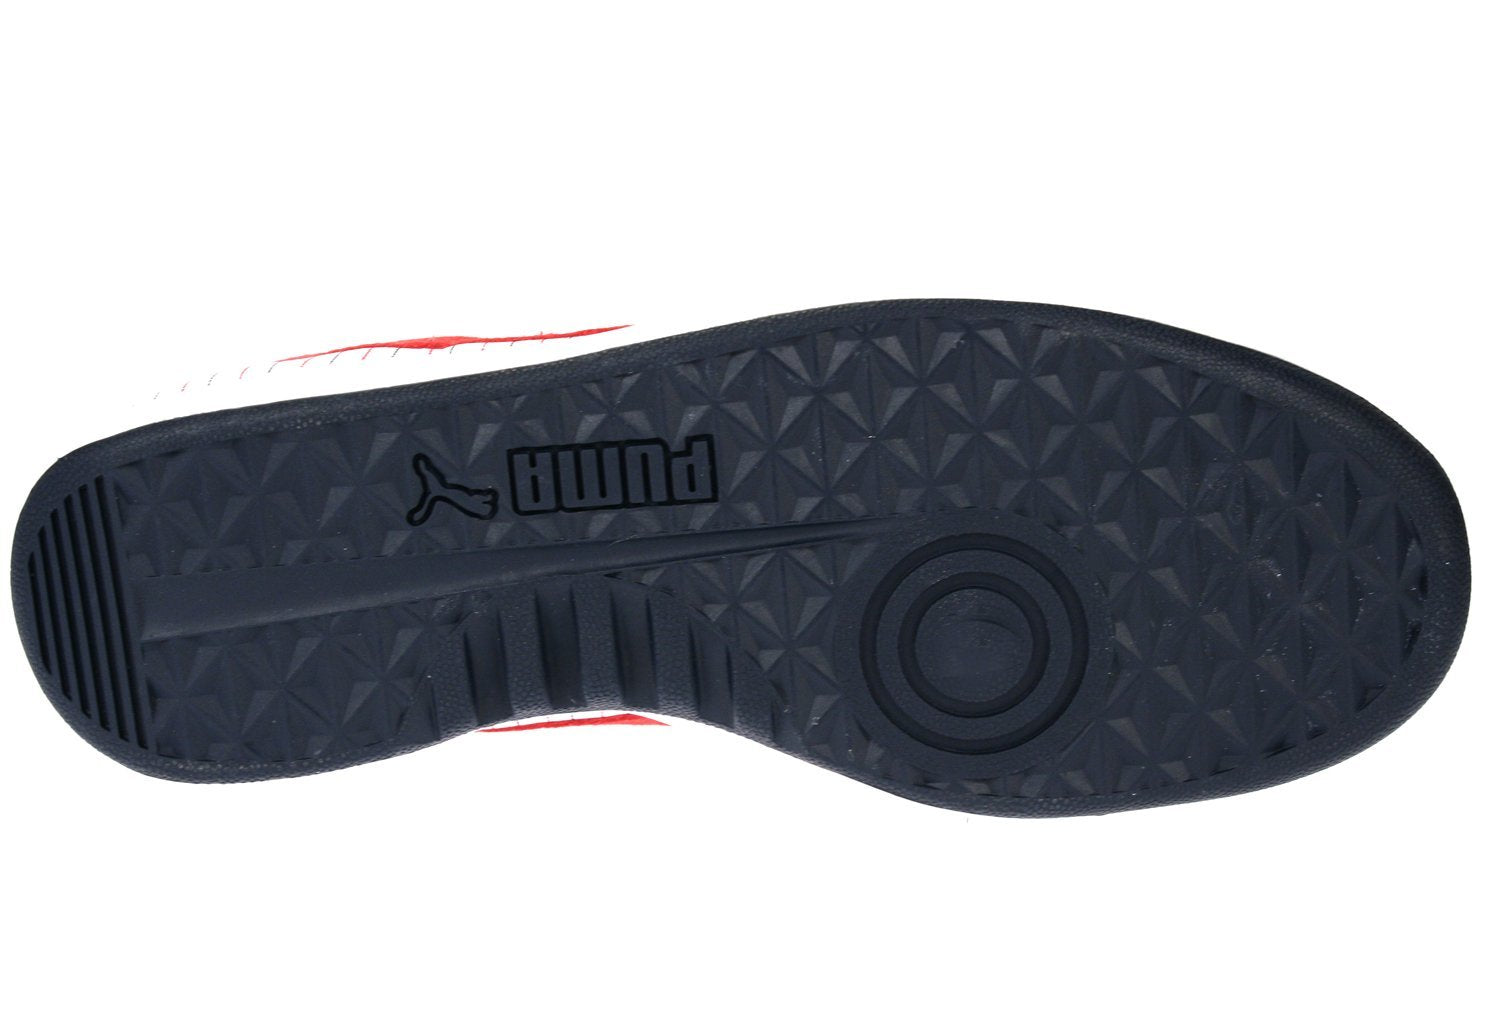 Puma California Men/'s City Sneakers Shoes City and Color Options